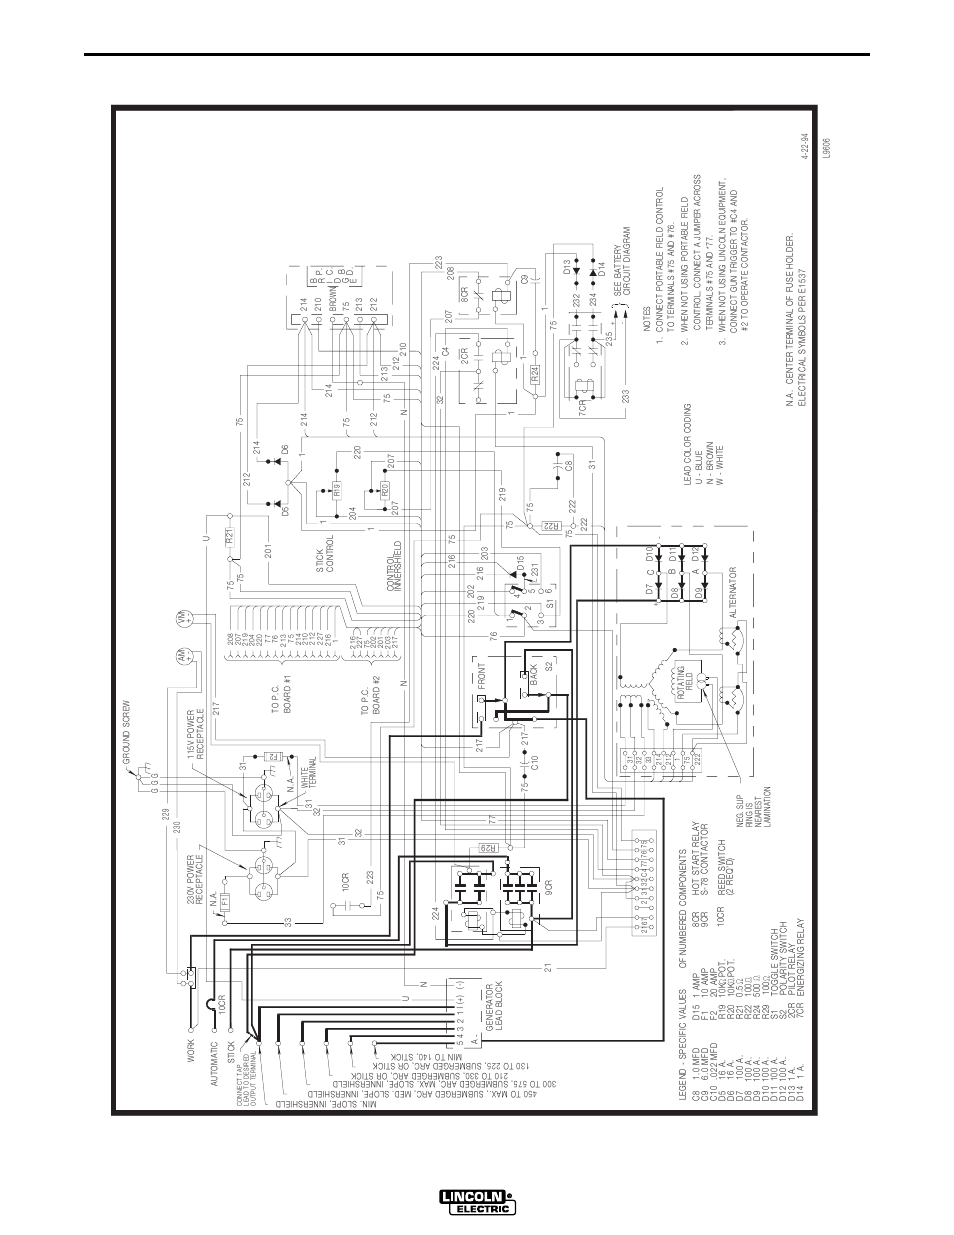 medium resolution of lincoln sam 400 wiring diagram